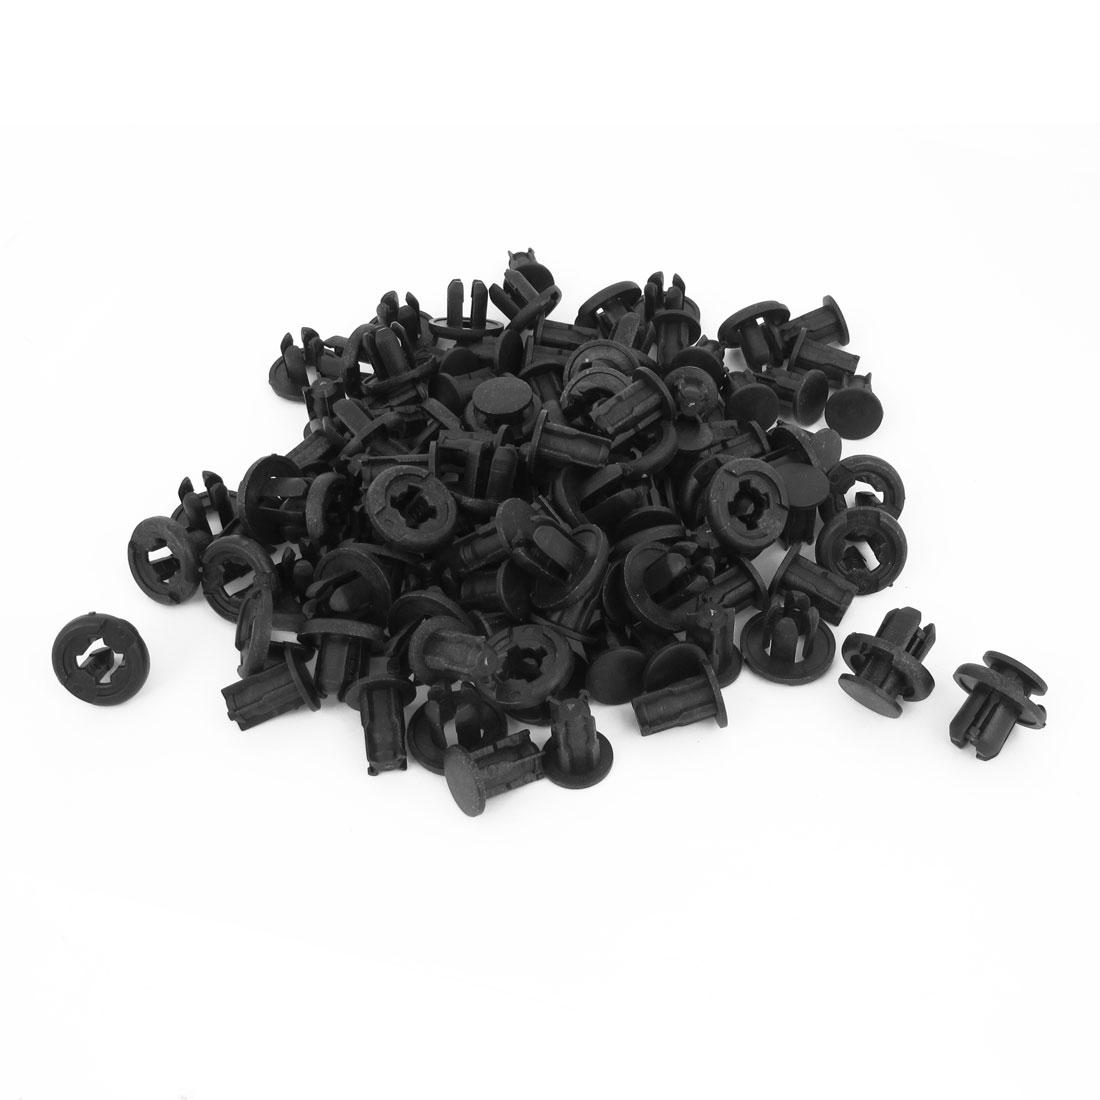 100 Pieces 10mm x 11mm Black Plastic Rivet Car Door Trim Panel Retainer Clip